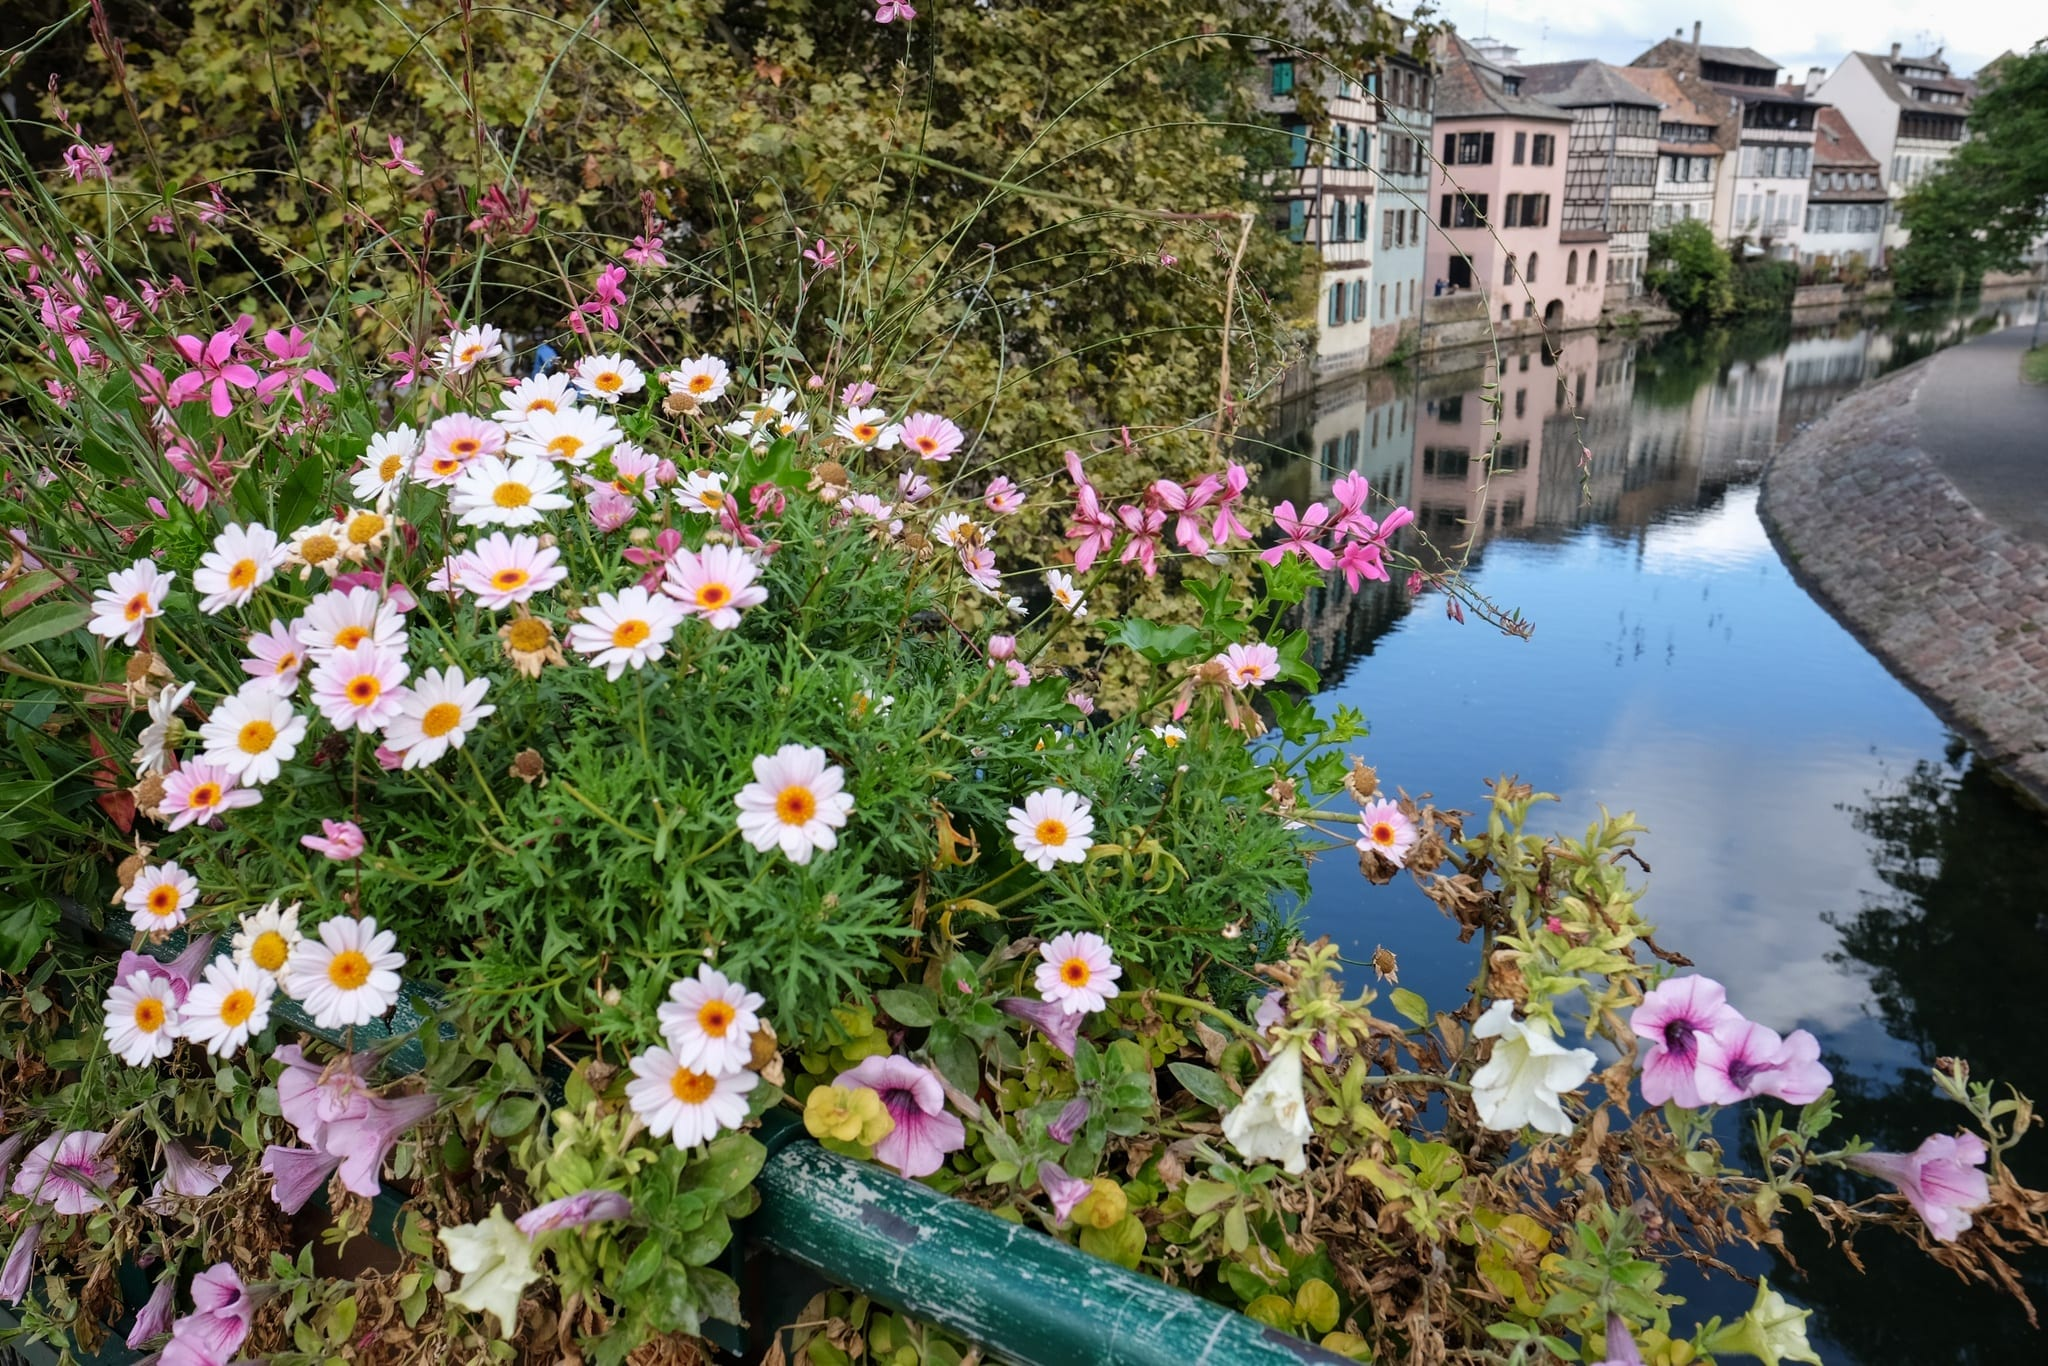 Bright white daisies with yellow center spilling over a bridge in Strasbourg, France, a still canal and pale houses in the background.